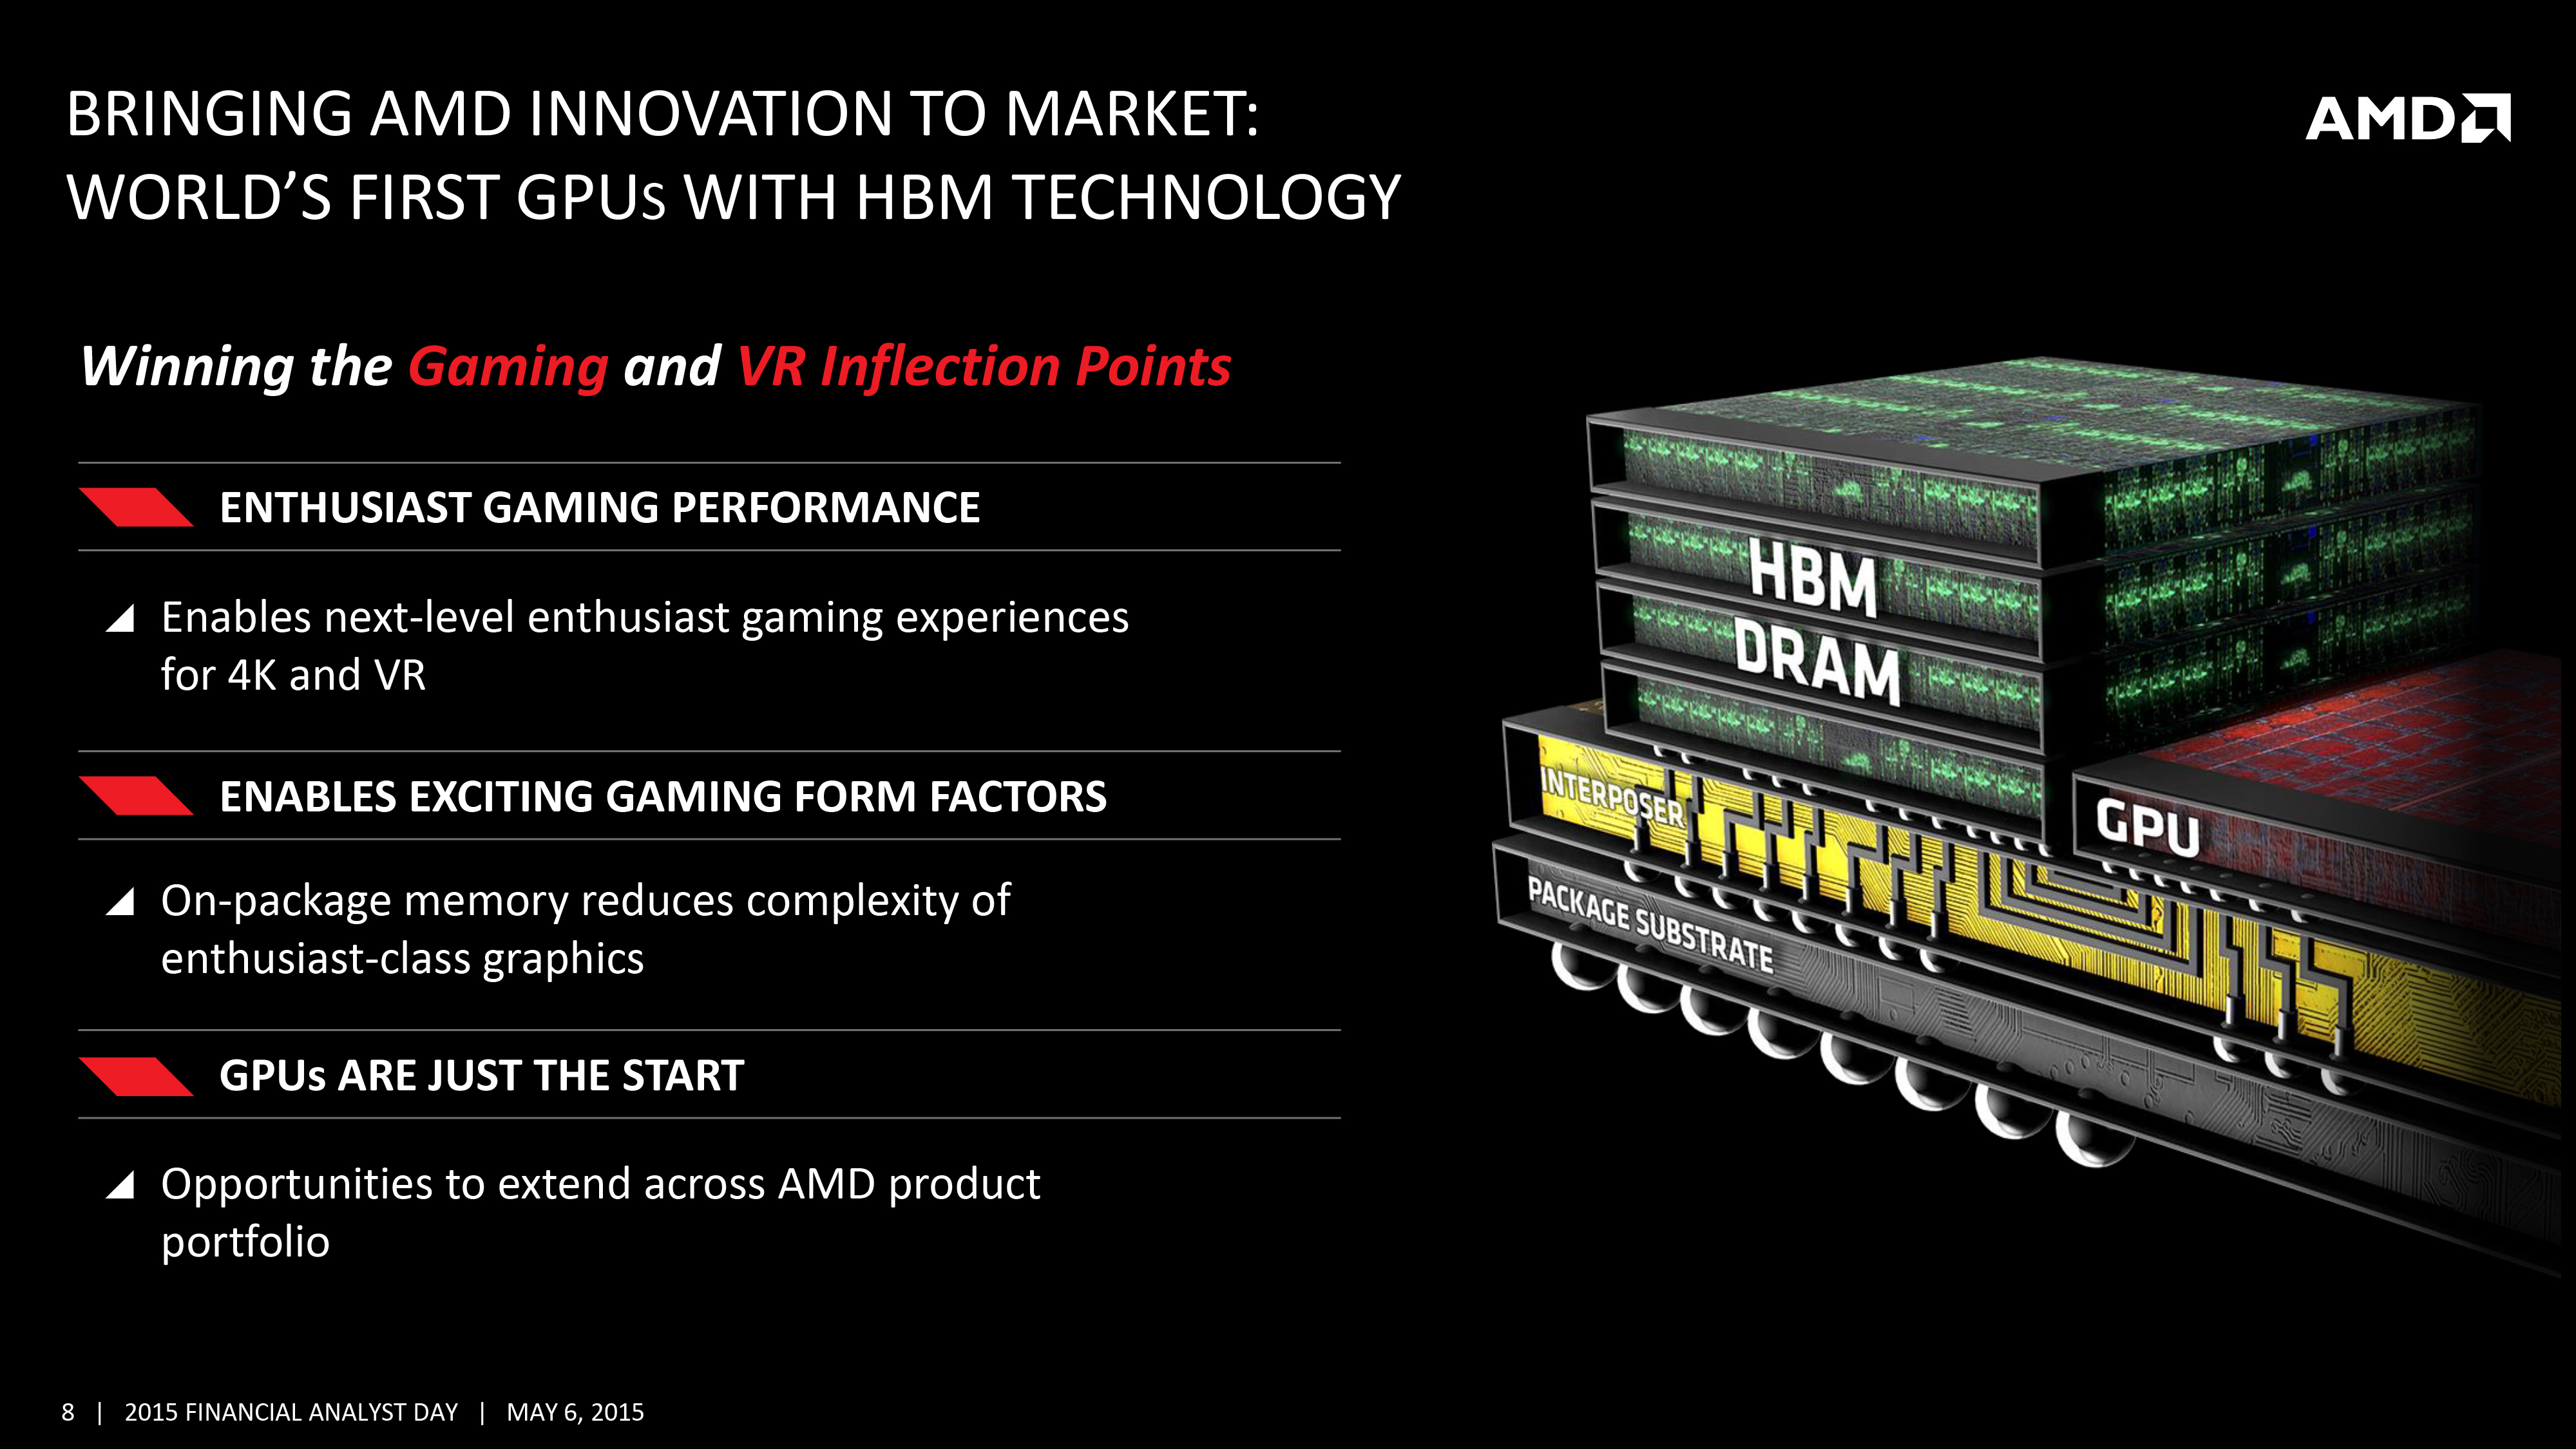 AMD To Launch New Desktop GPU This Quarter (Q2'15) With HBM